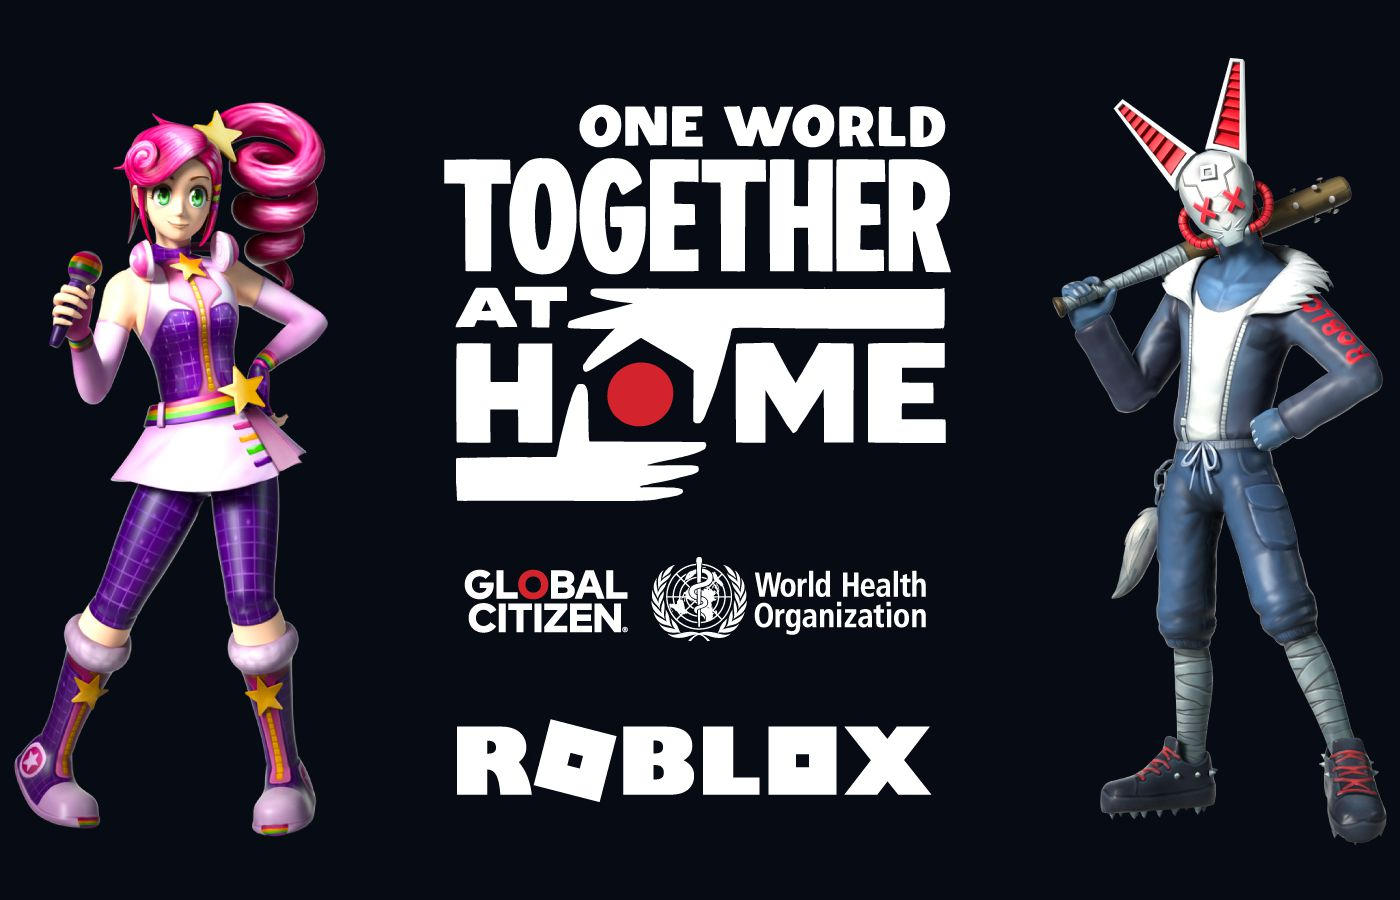 Roblox Live Streaming Now Roblox To Stream The One World Together At Home Benefit Concert Inside A Virtual Theater The Verge